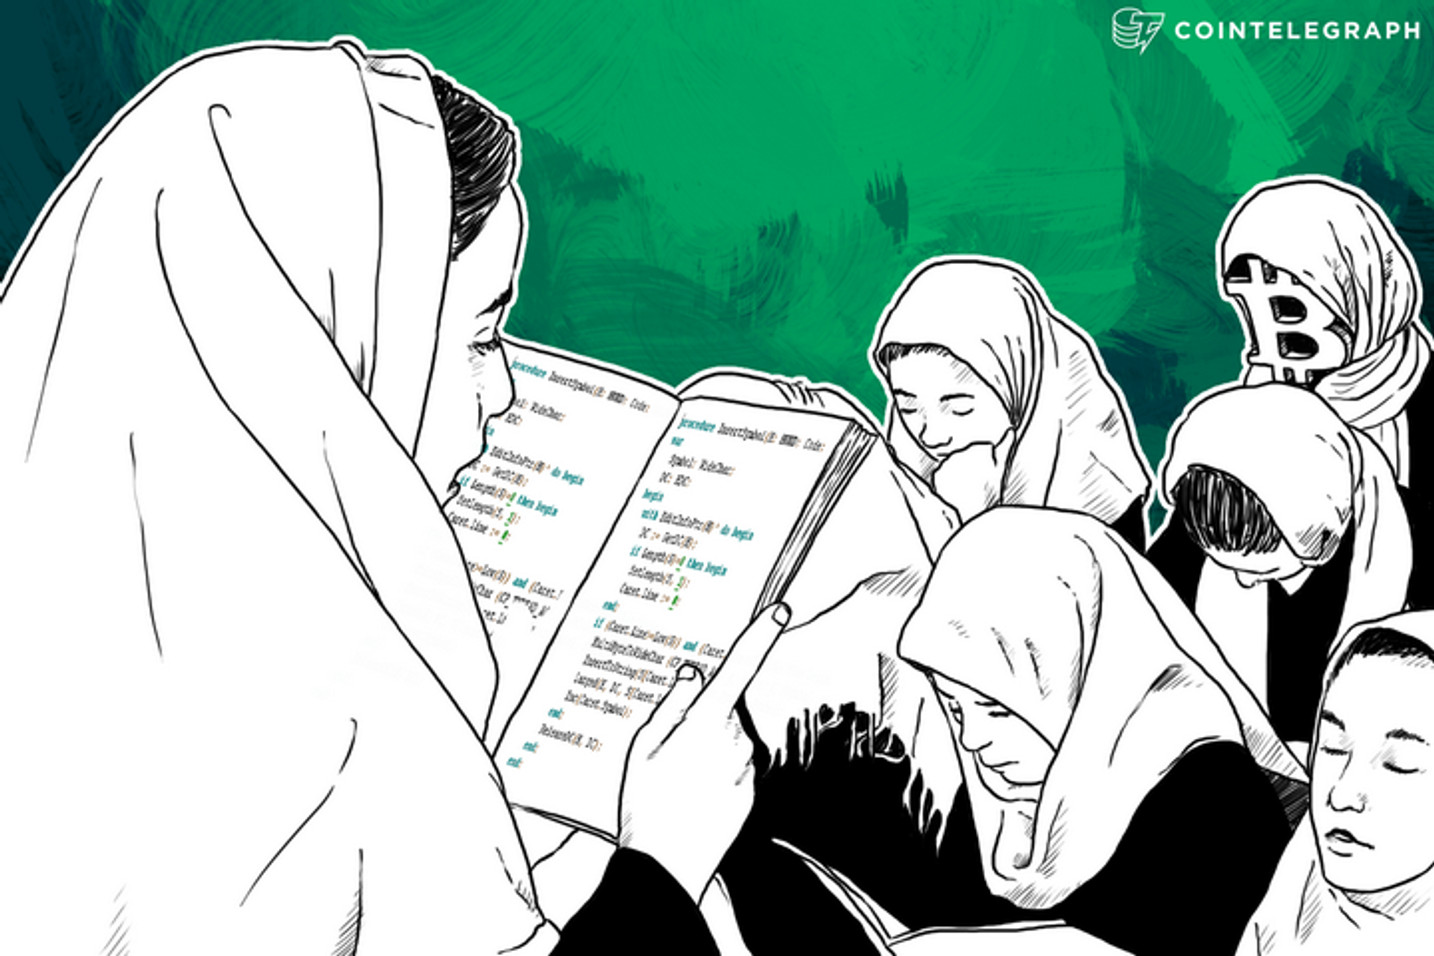 Afghan Girls Can Now 'Participate in the Global Economy' with Bitcoin & Learning Code